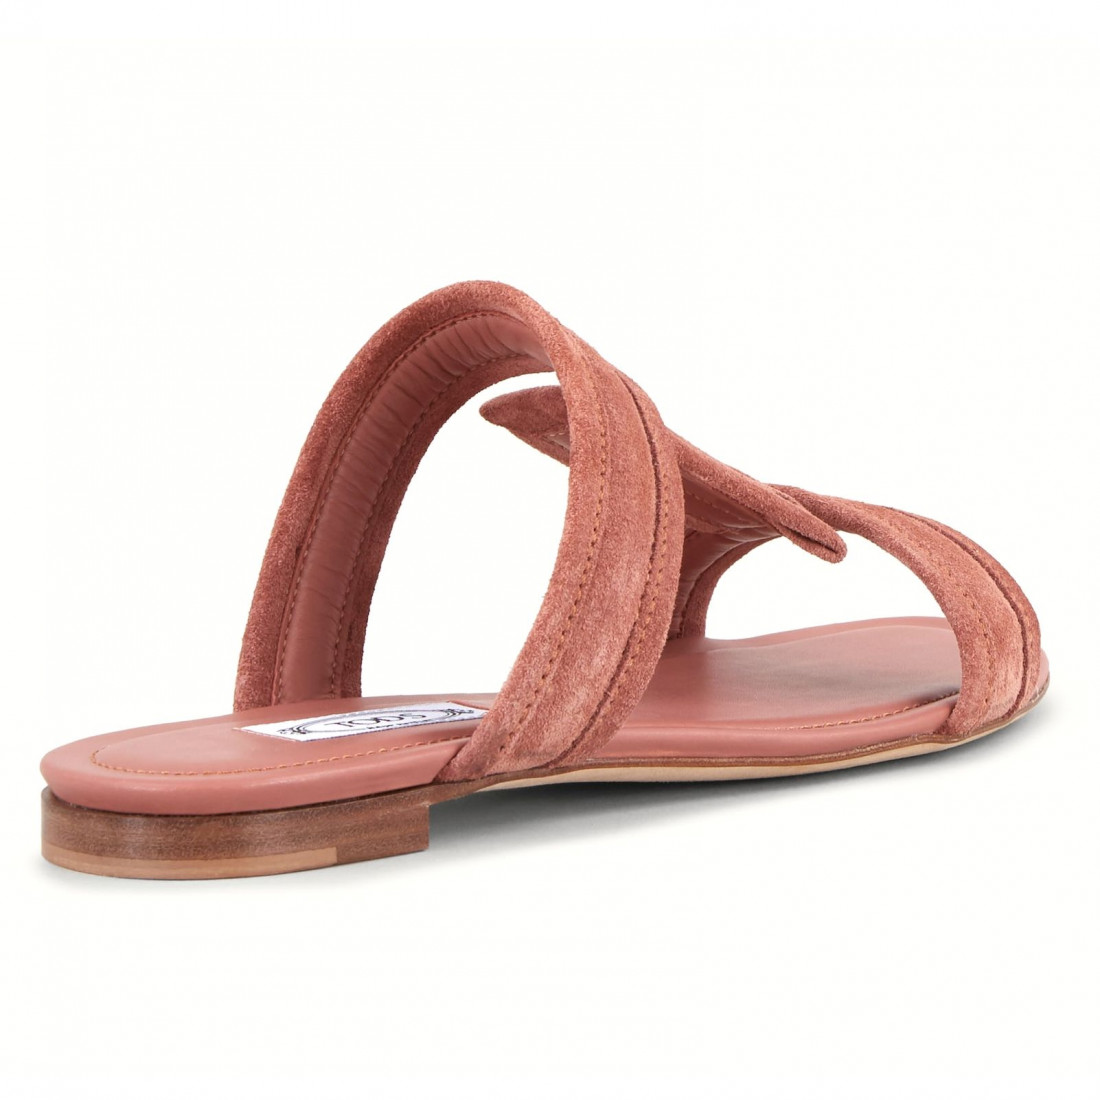 sandals woman tods xxw37b0at80re0m026 4253